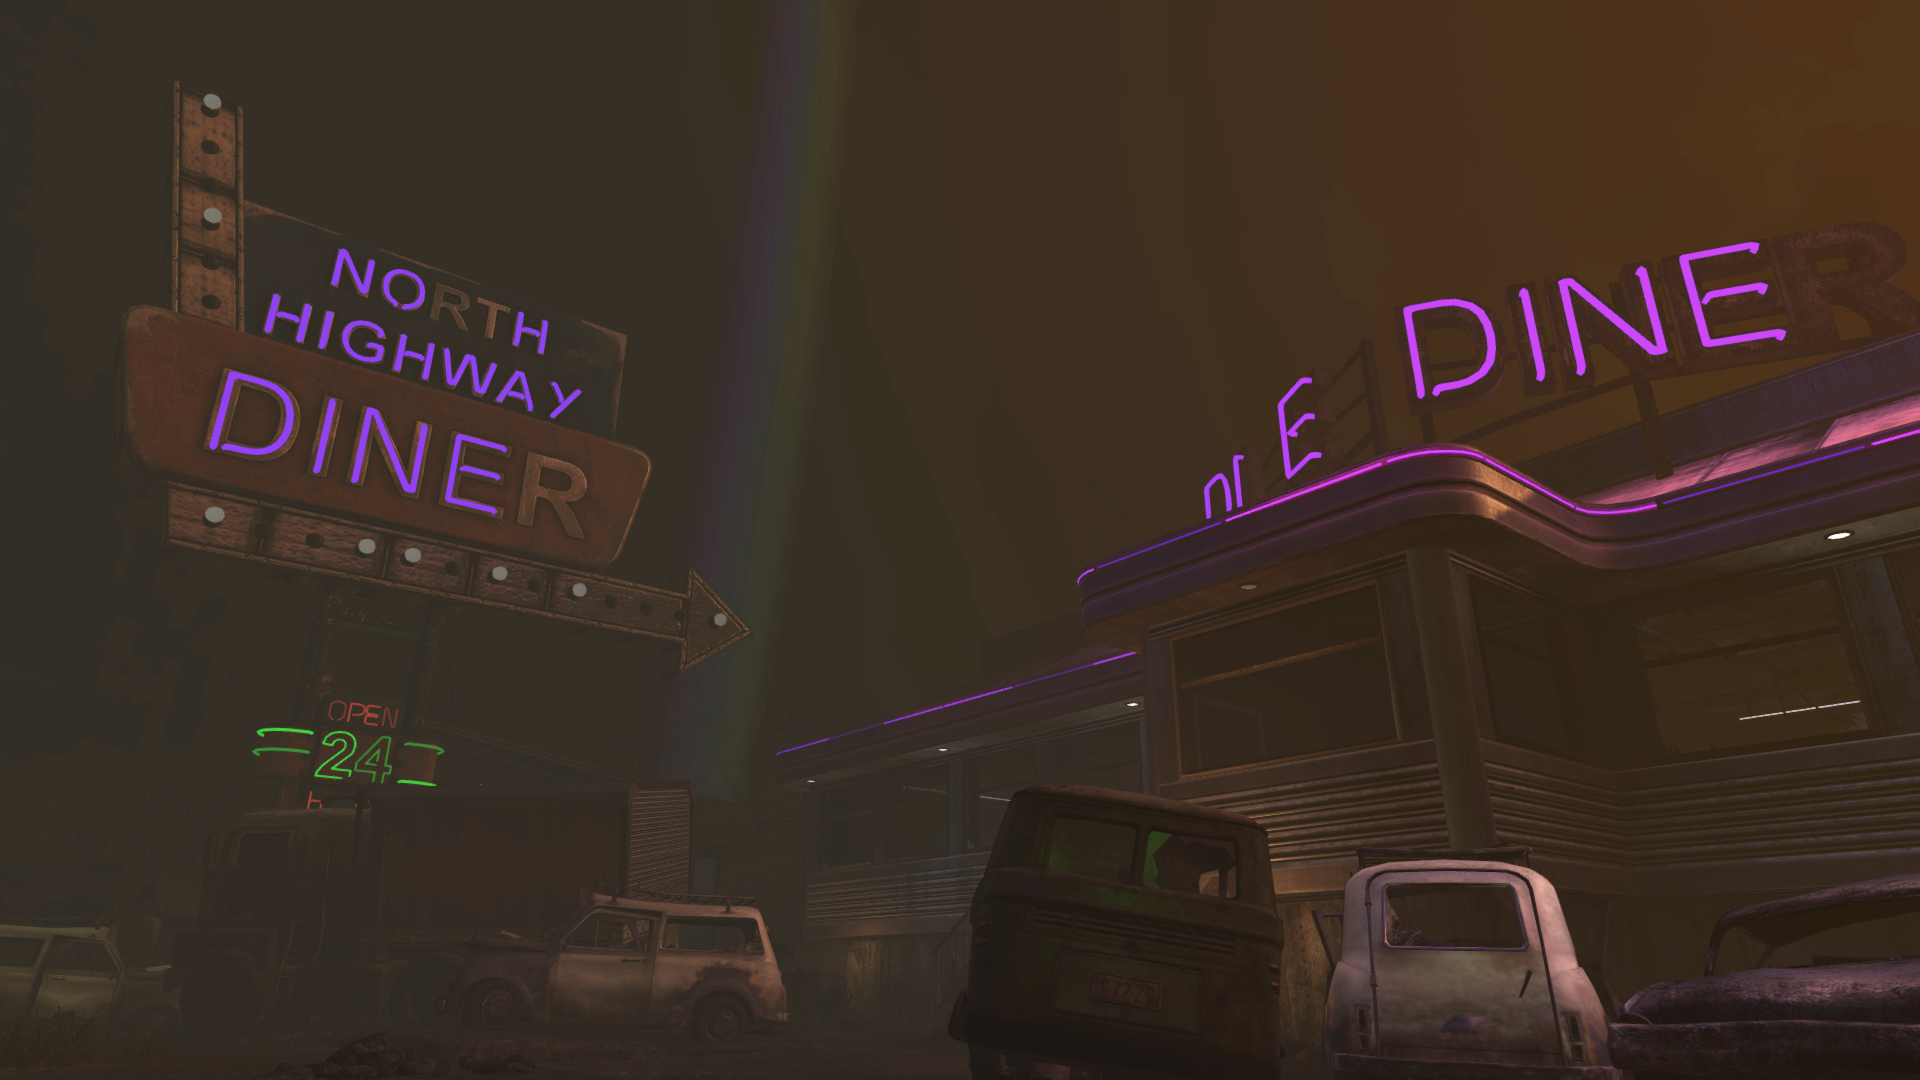 Diner - The Call of Duty Wiki - Black Ops II, Ghosts, and more! M1216